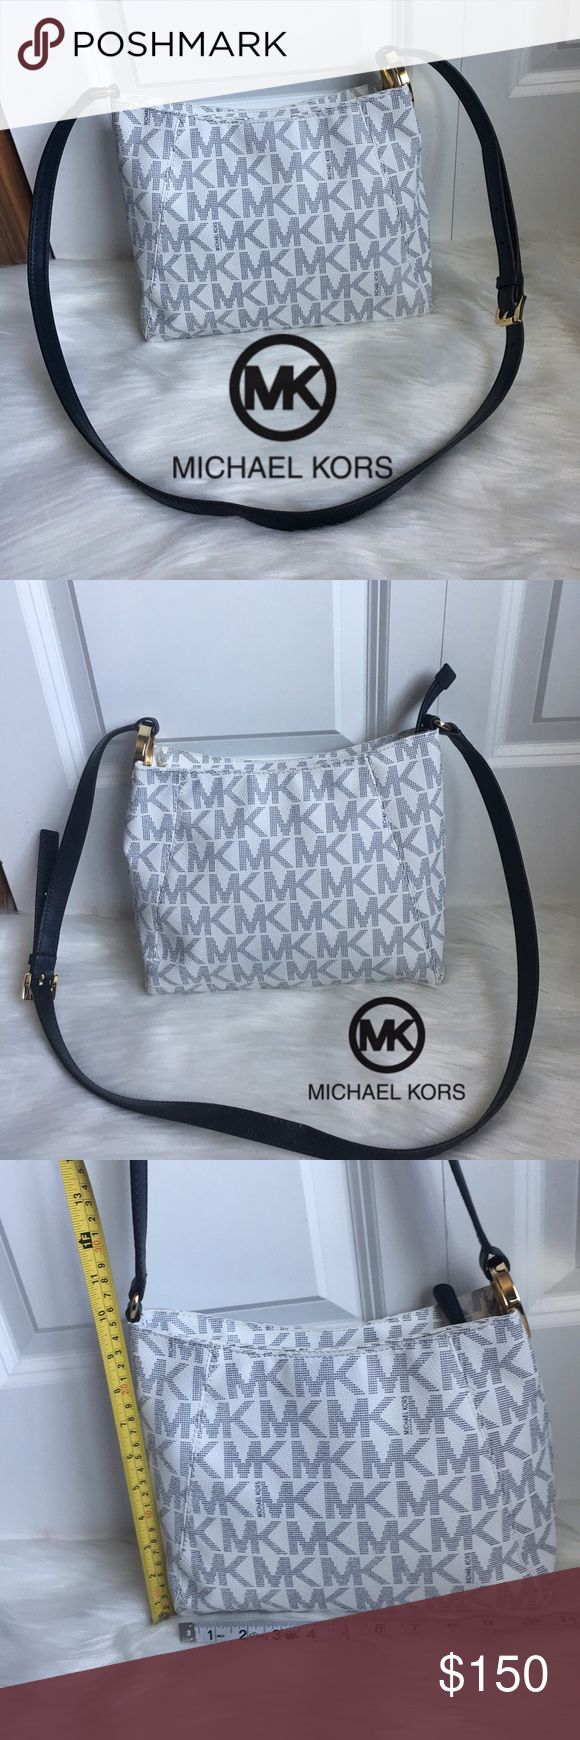 Micheal Kors Crossbody! Good used condition!! Very cute Crossbody purse with adjustable strap. In navy blue and white. Perfect for summer! Beautiful MK gold logo on side. Cool small pocket hidden shown in 5th picture. No stains, tears, or marks. Very cute will definitely get compliments! Check out my closet for other name brand items!! Michael Kors Bags Crossbody Bags